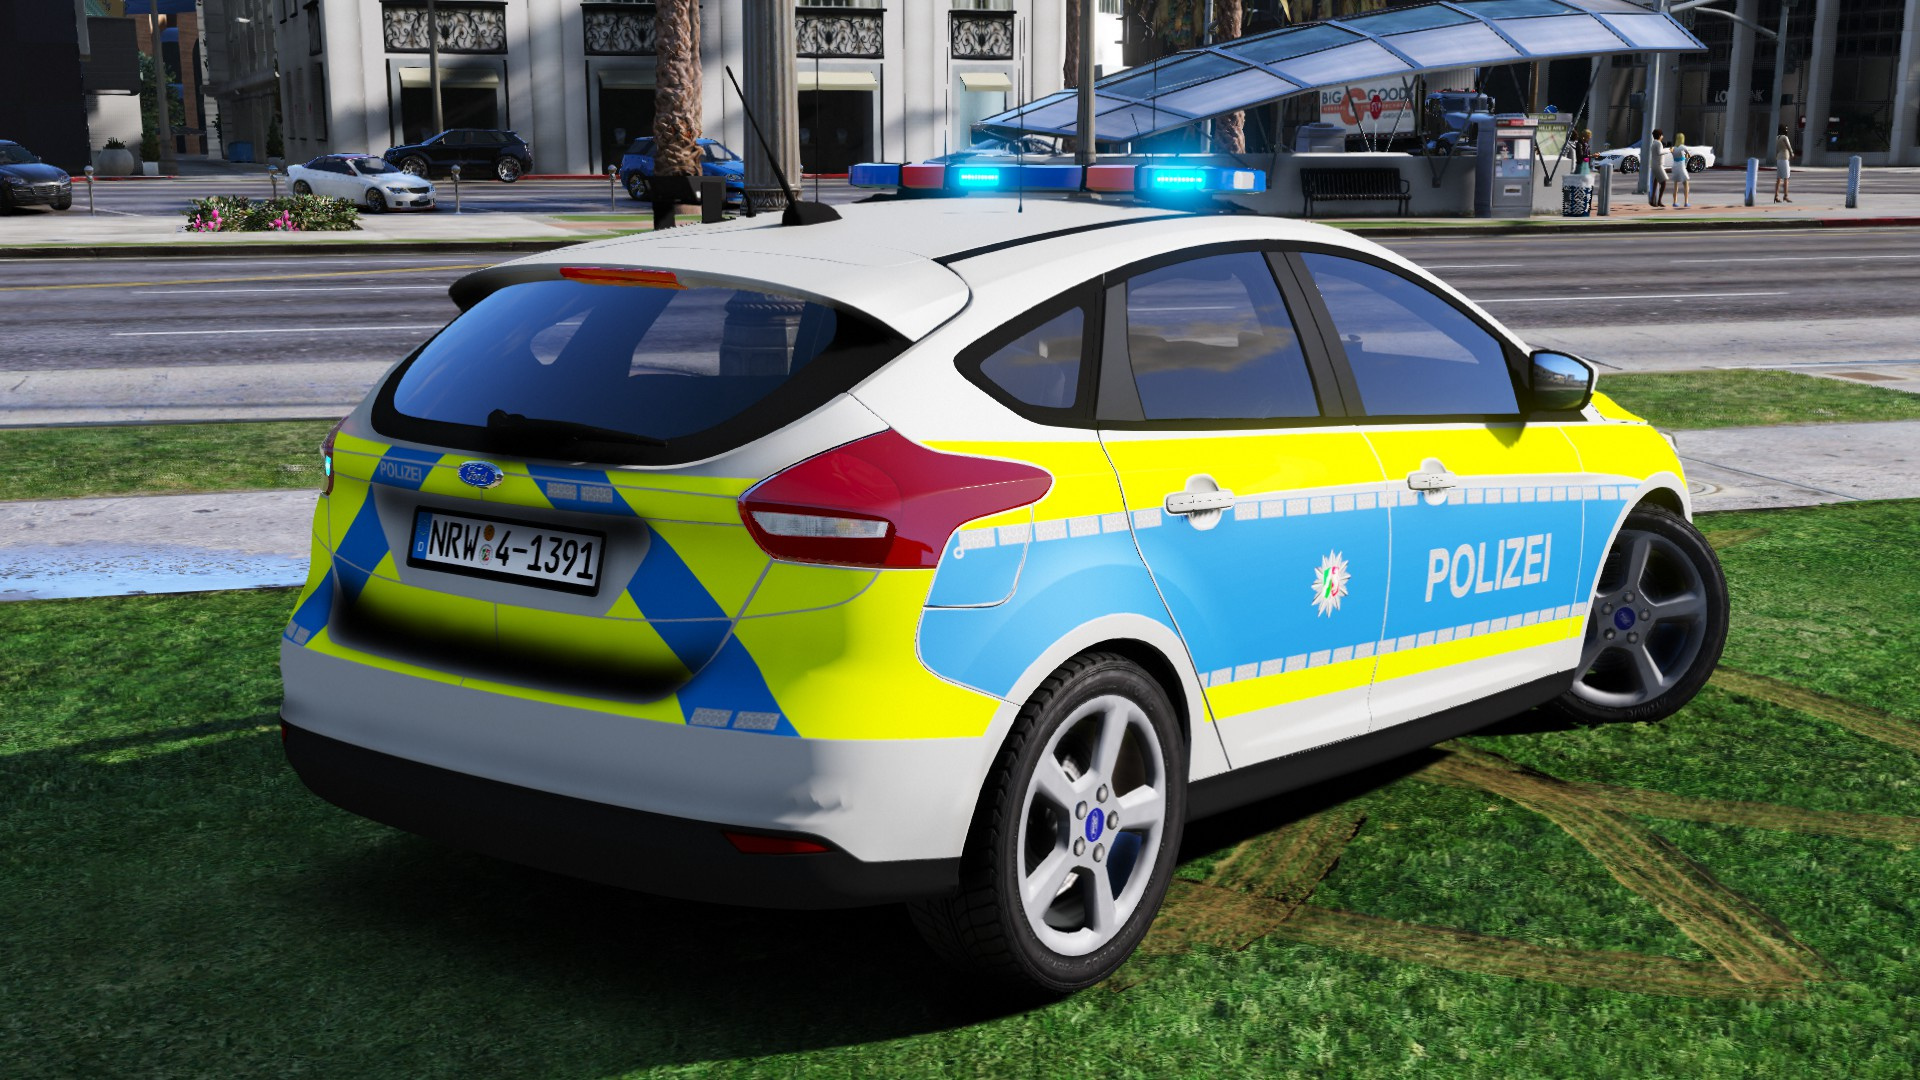 ford focus polizei nrw gta5. Black Bedroom Furniture Sets. Home Design Ideas